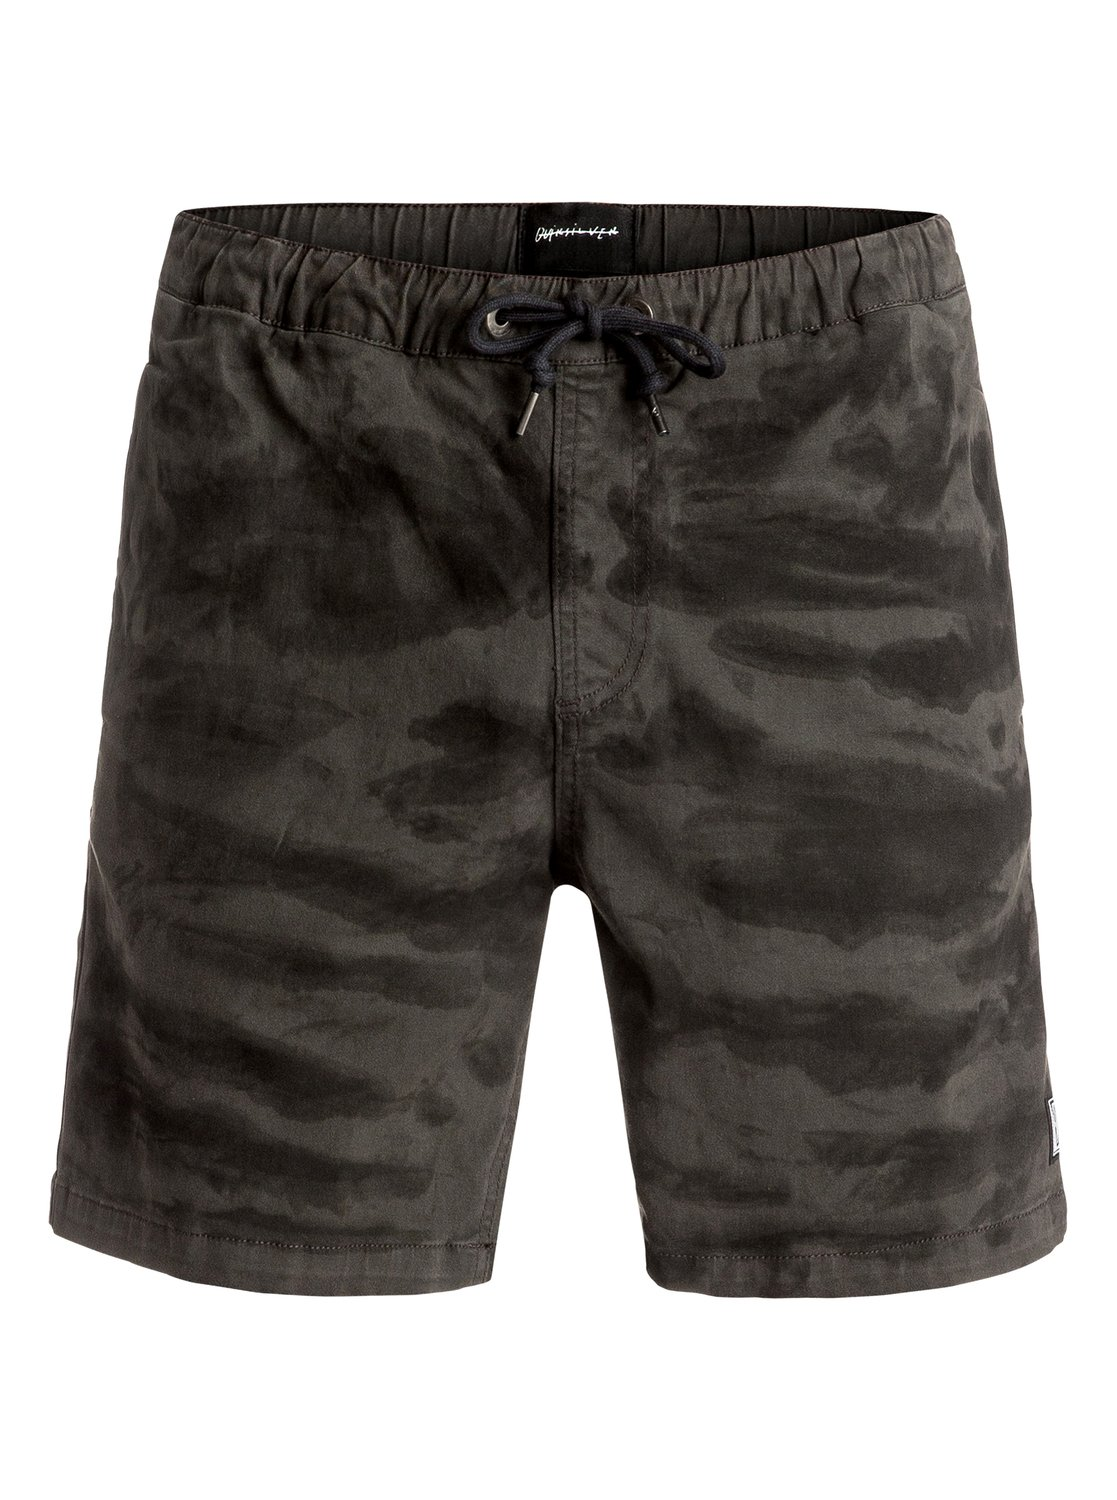 Battered Tie dye 17 - short pour homme - quiksilver